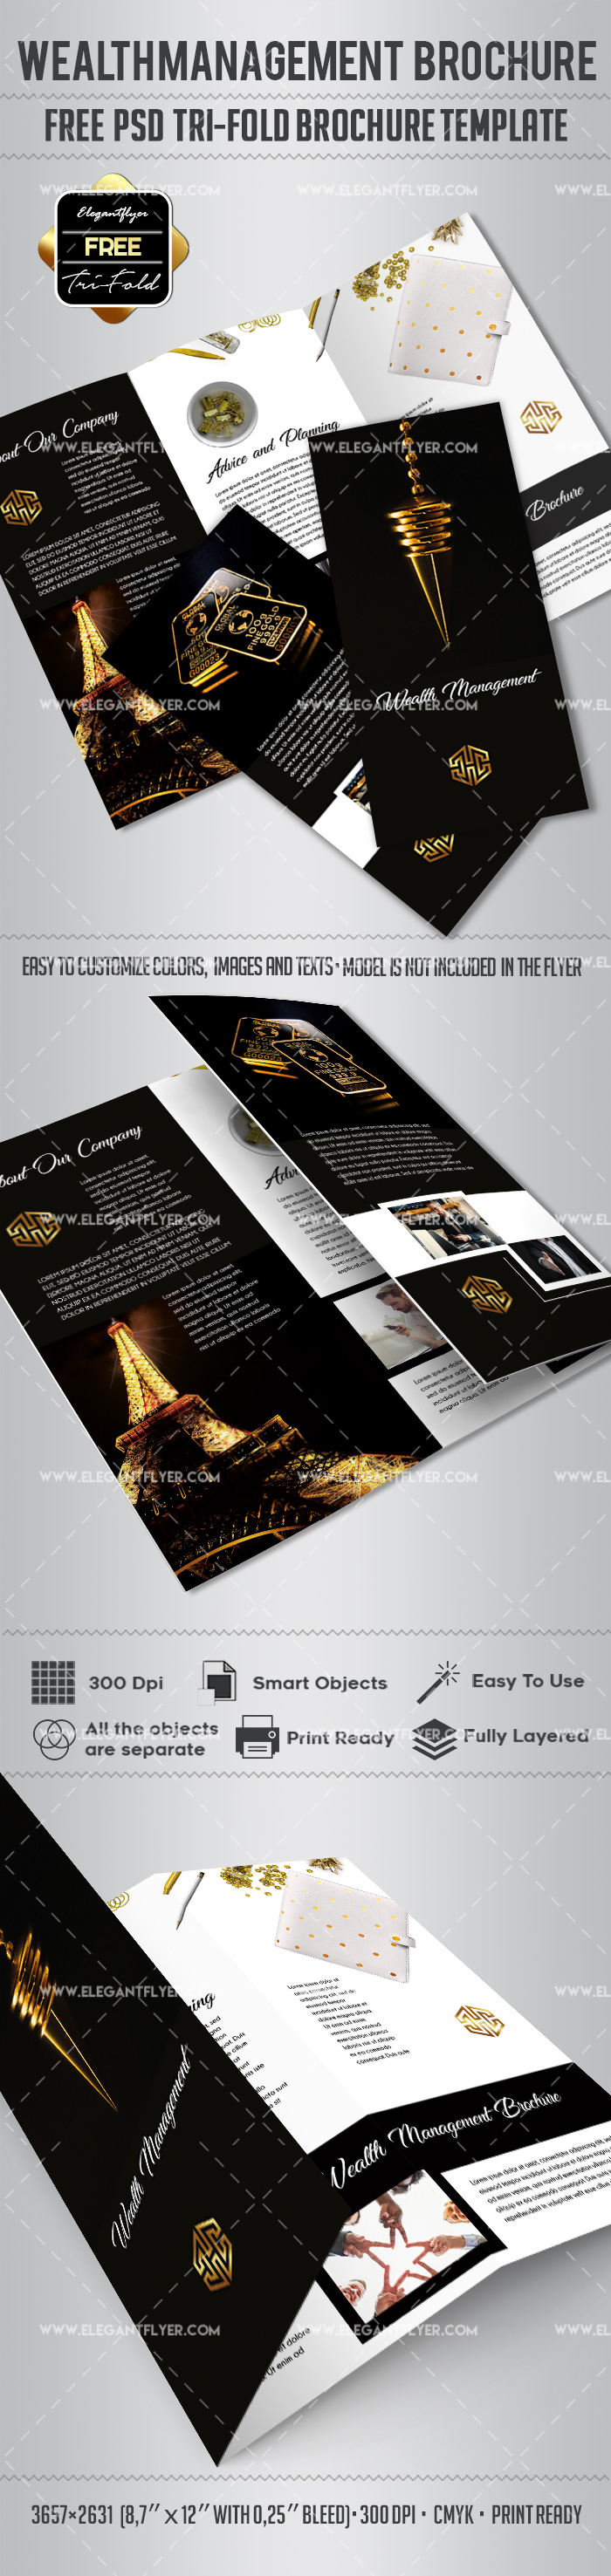 Wealth Management – Free Tri-Fold Brochure PSD Template